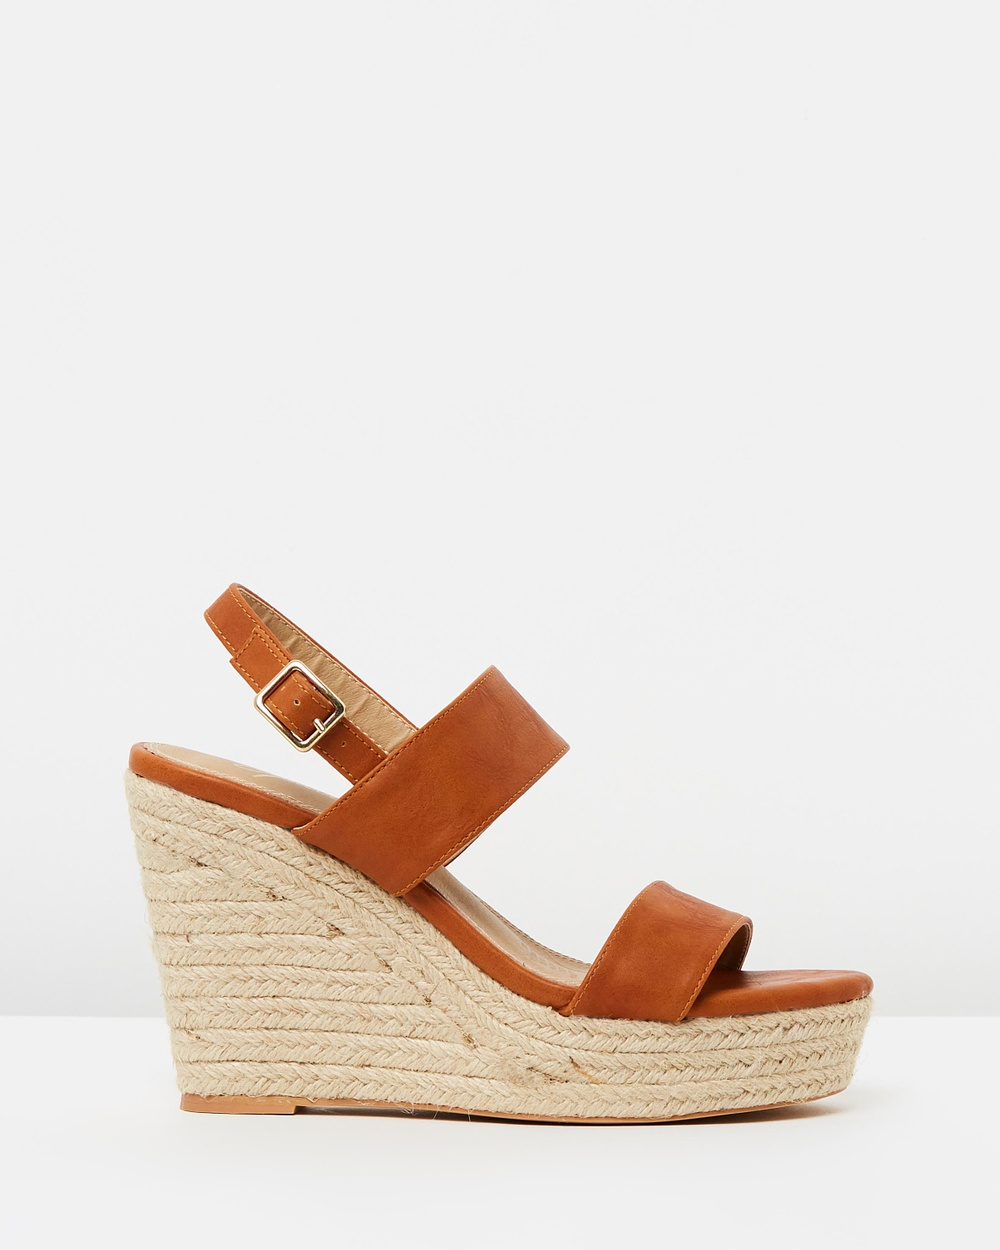 SPURR ICONIC EXCLUSIVE Zina Wedges Wedges Tan Smooth ICONIC EXCLUSIVE Zina Wedges